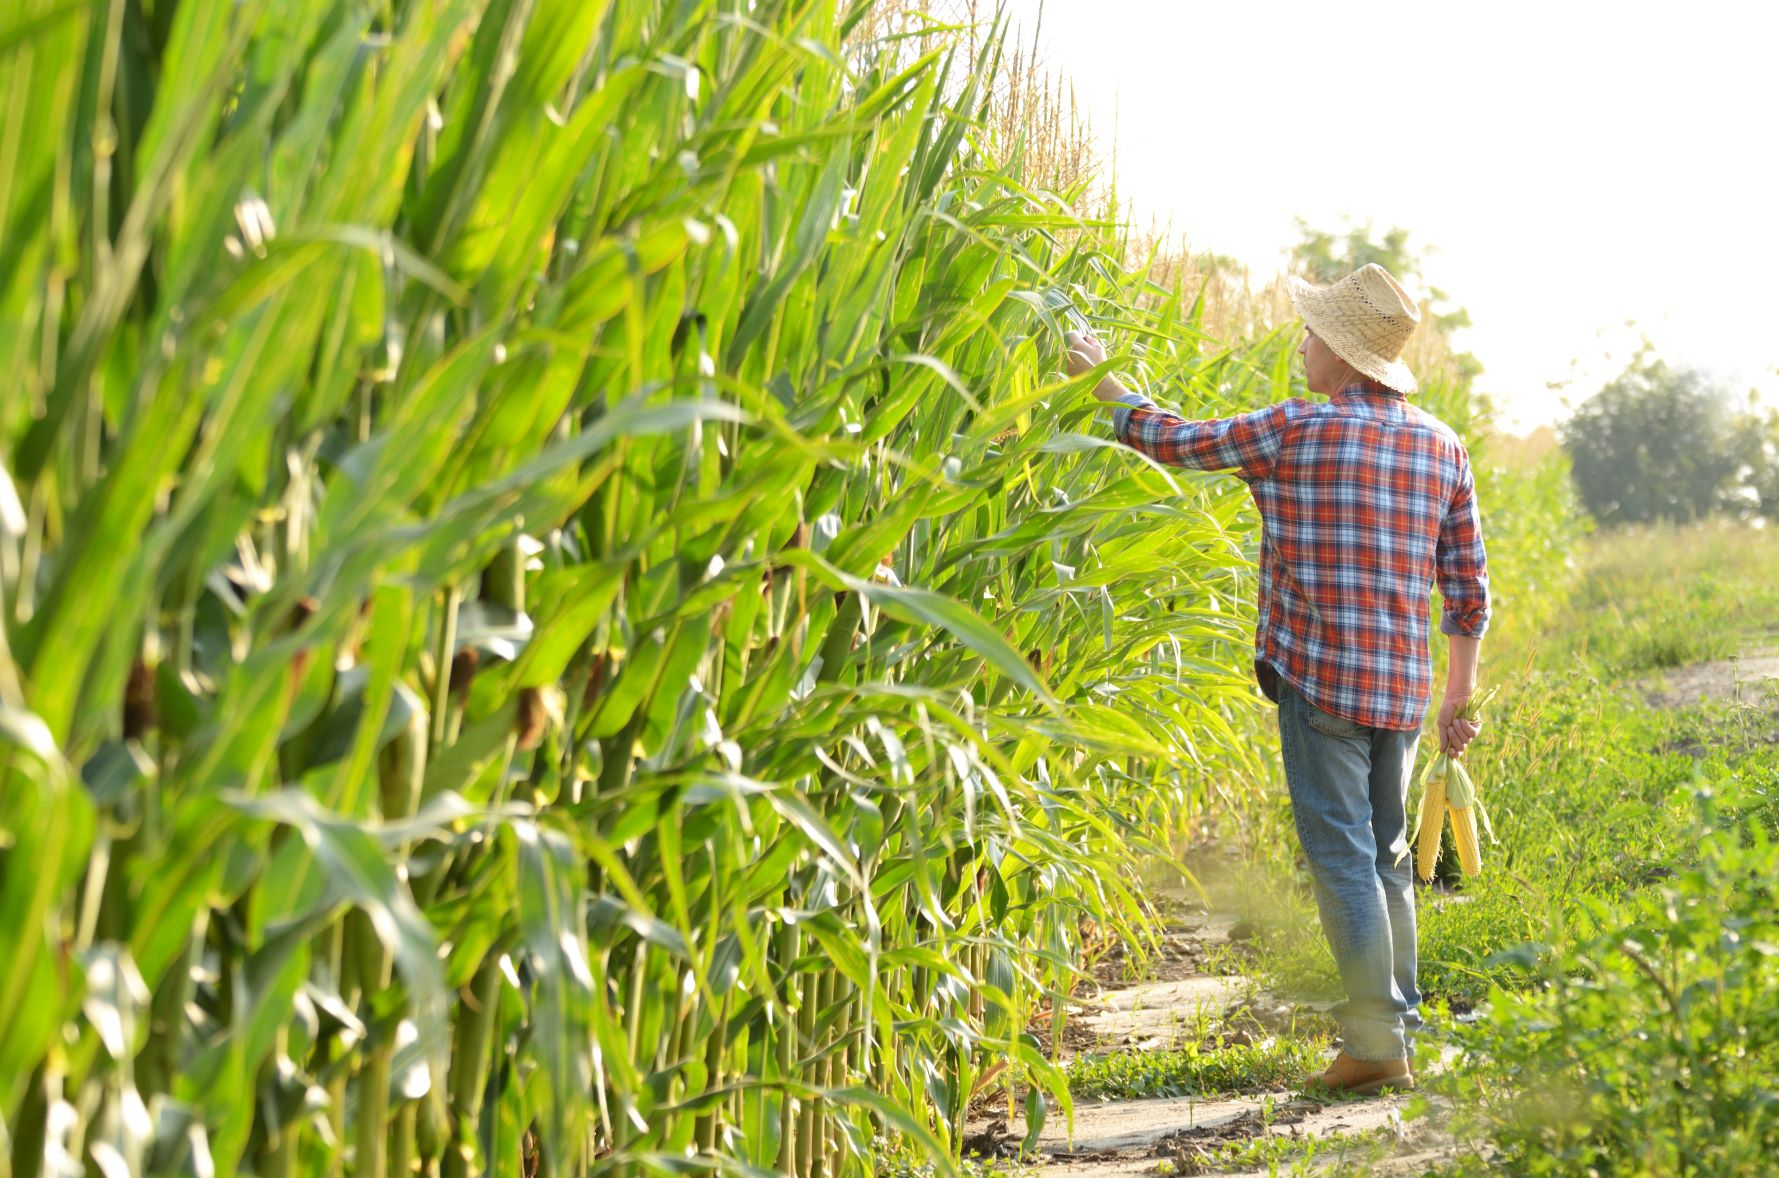 Creating a safe work environment for farmhands